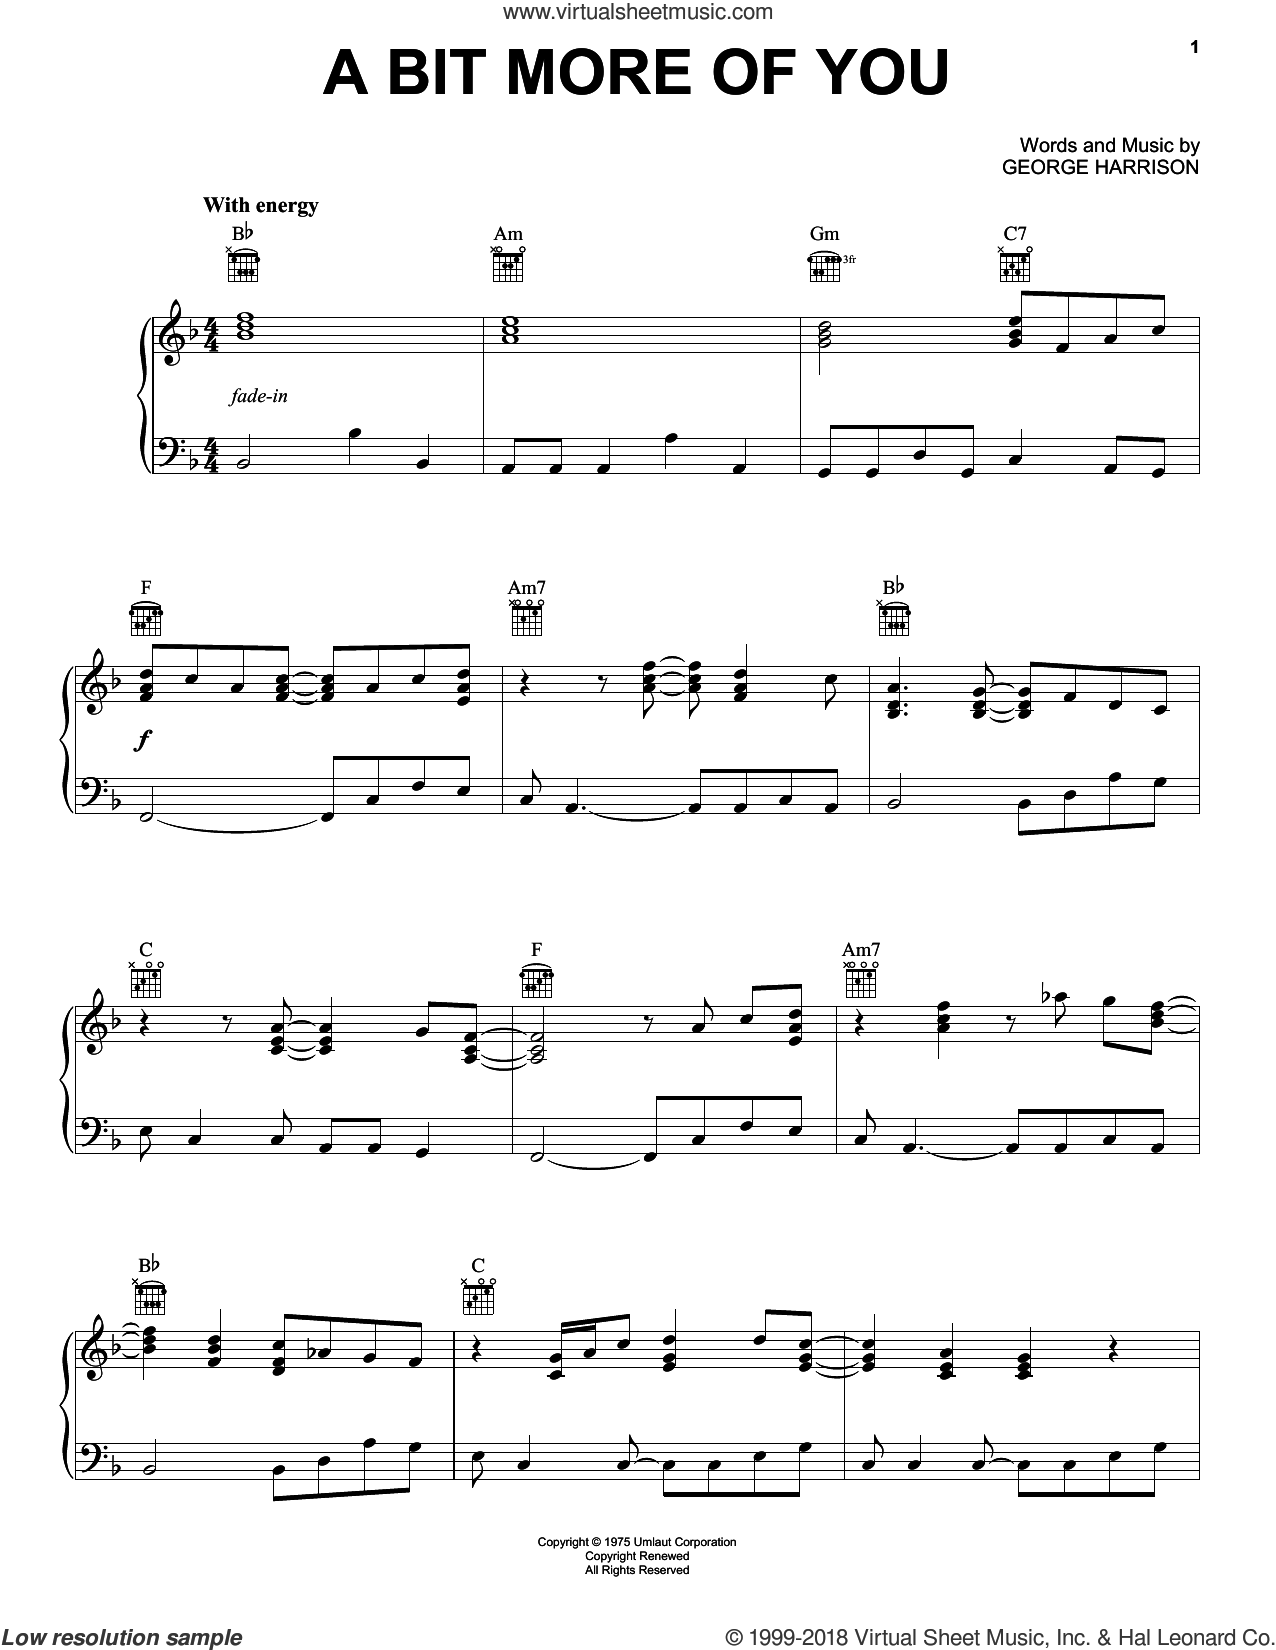 A Bit More Of You sheet music for piano solo by George Harrison. Score Image Preview.